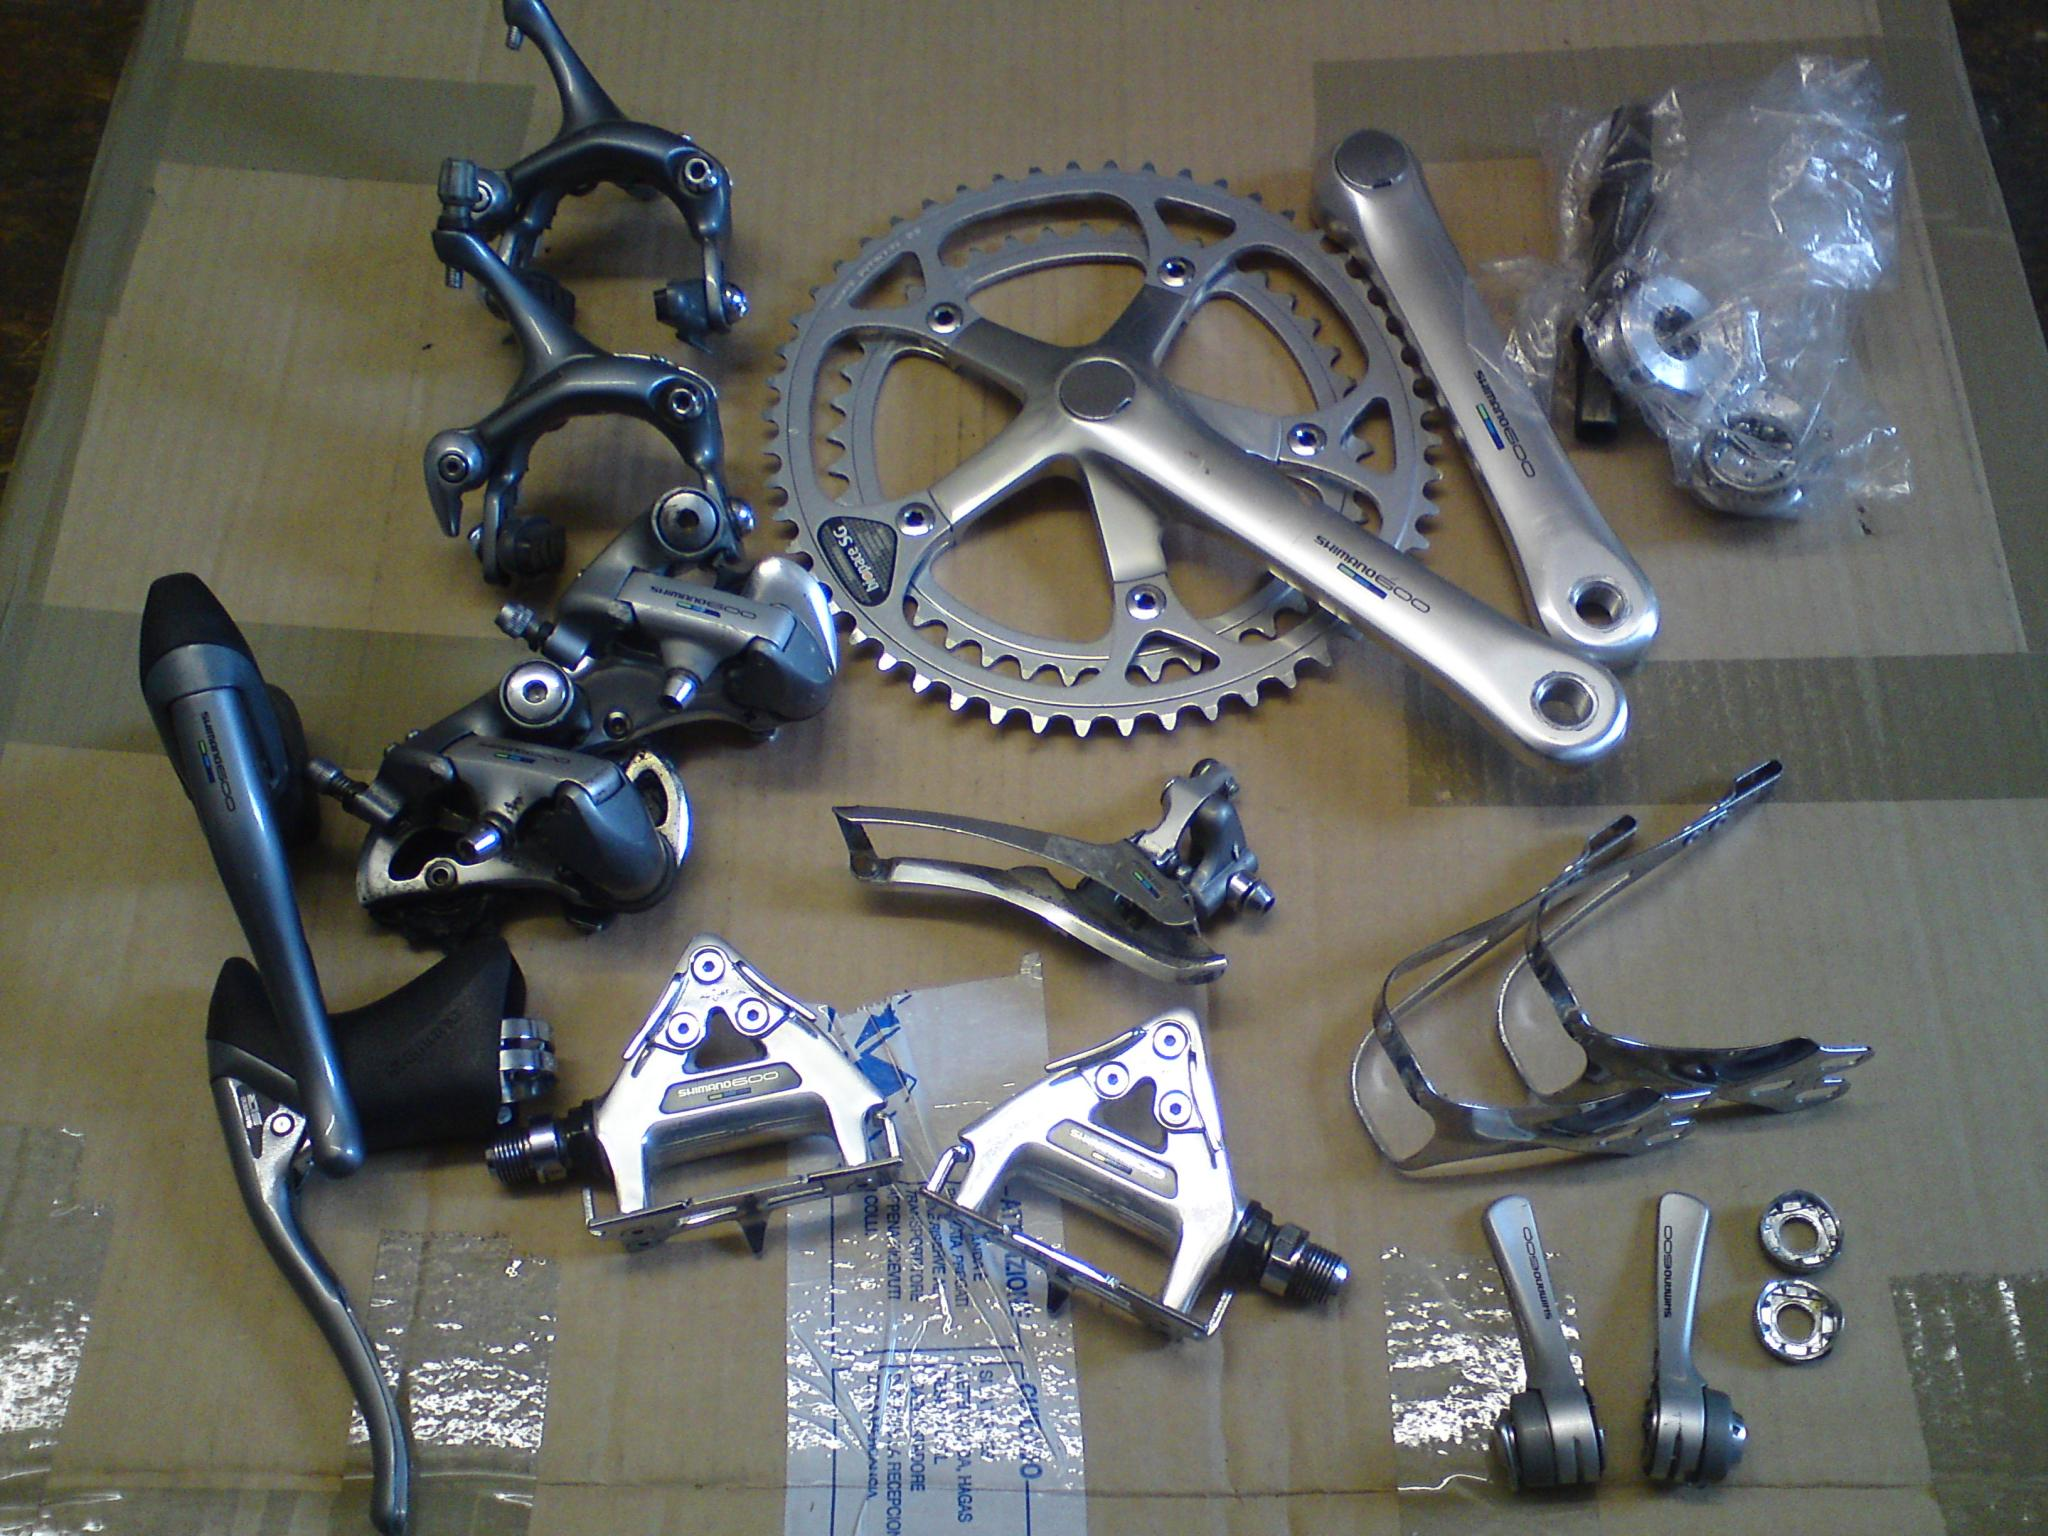 ee963a038a5 For Sale: very nice shimano 600 tri-colour groupset | LFGSS